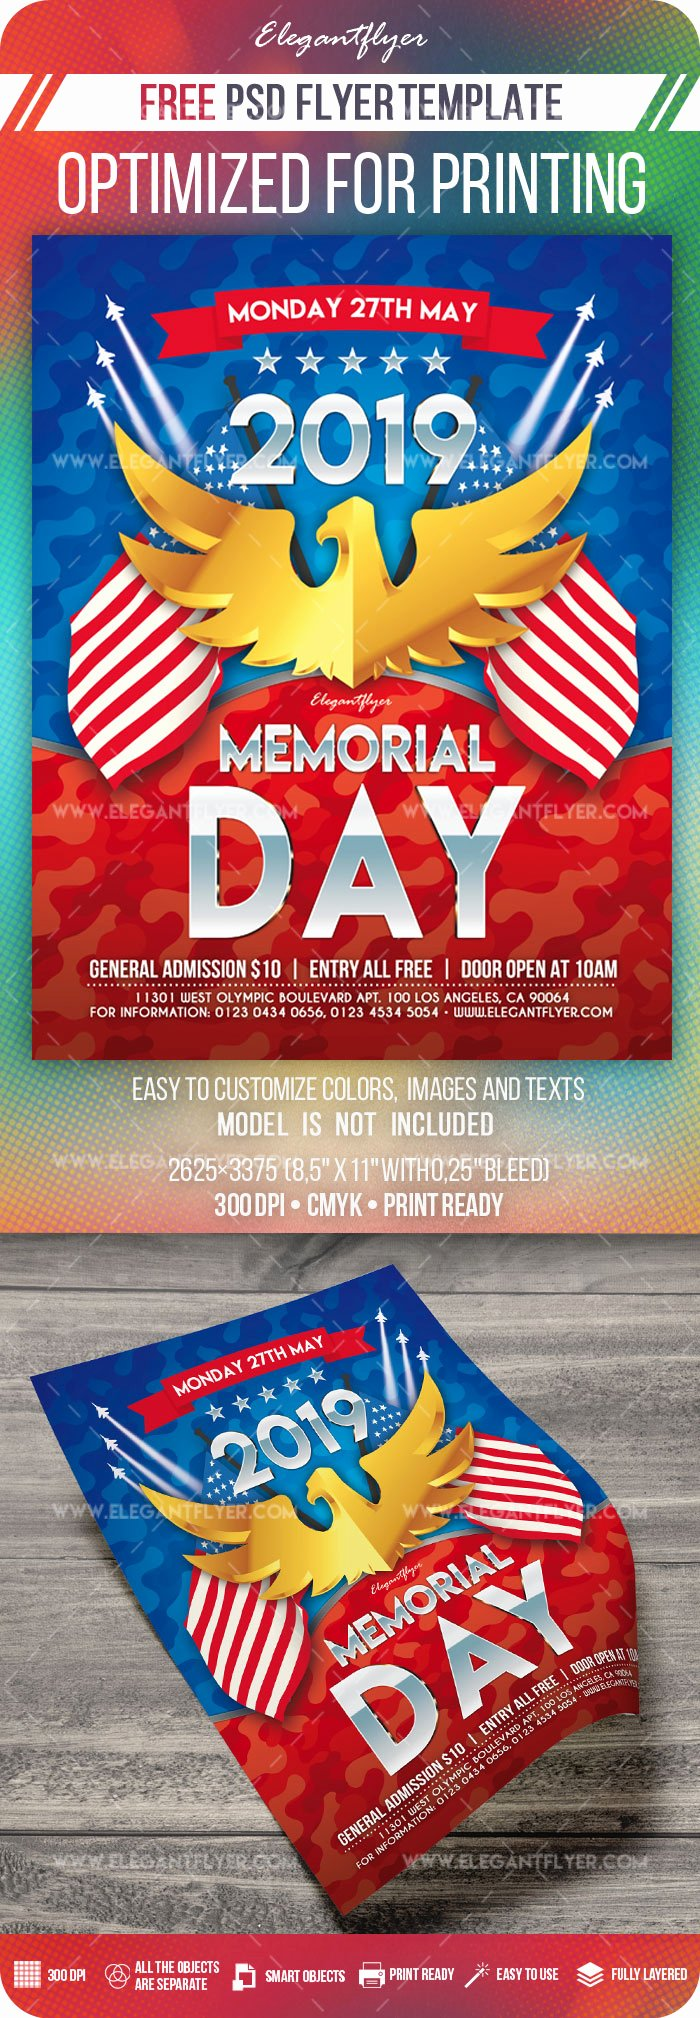 Memorial Day Flyer Template Free Beautiful Memorial Day – Free Flyer Psd Template – by Elegantflyer